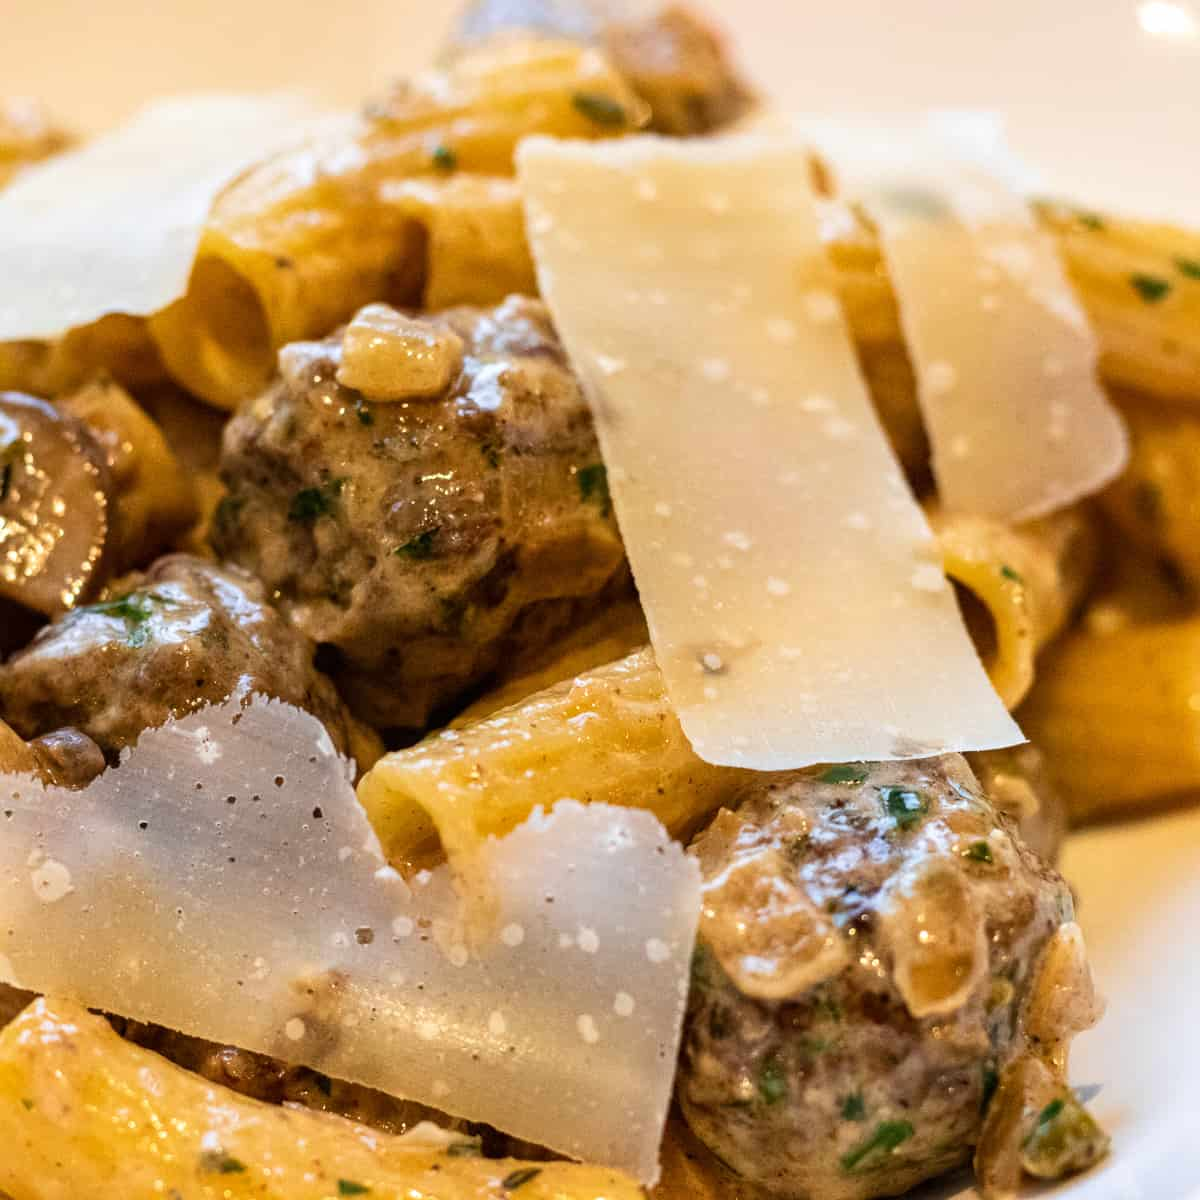 meatball pasta made with creamy and spicy sauce